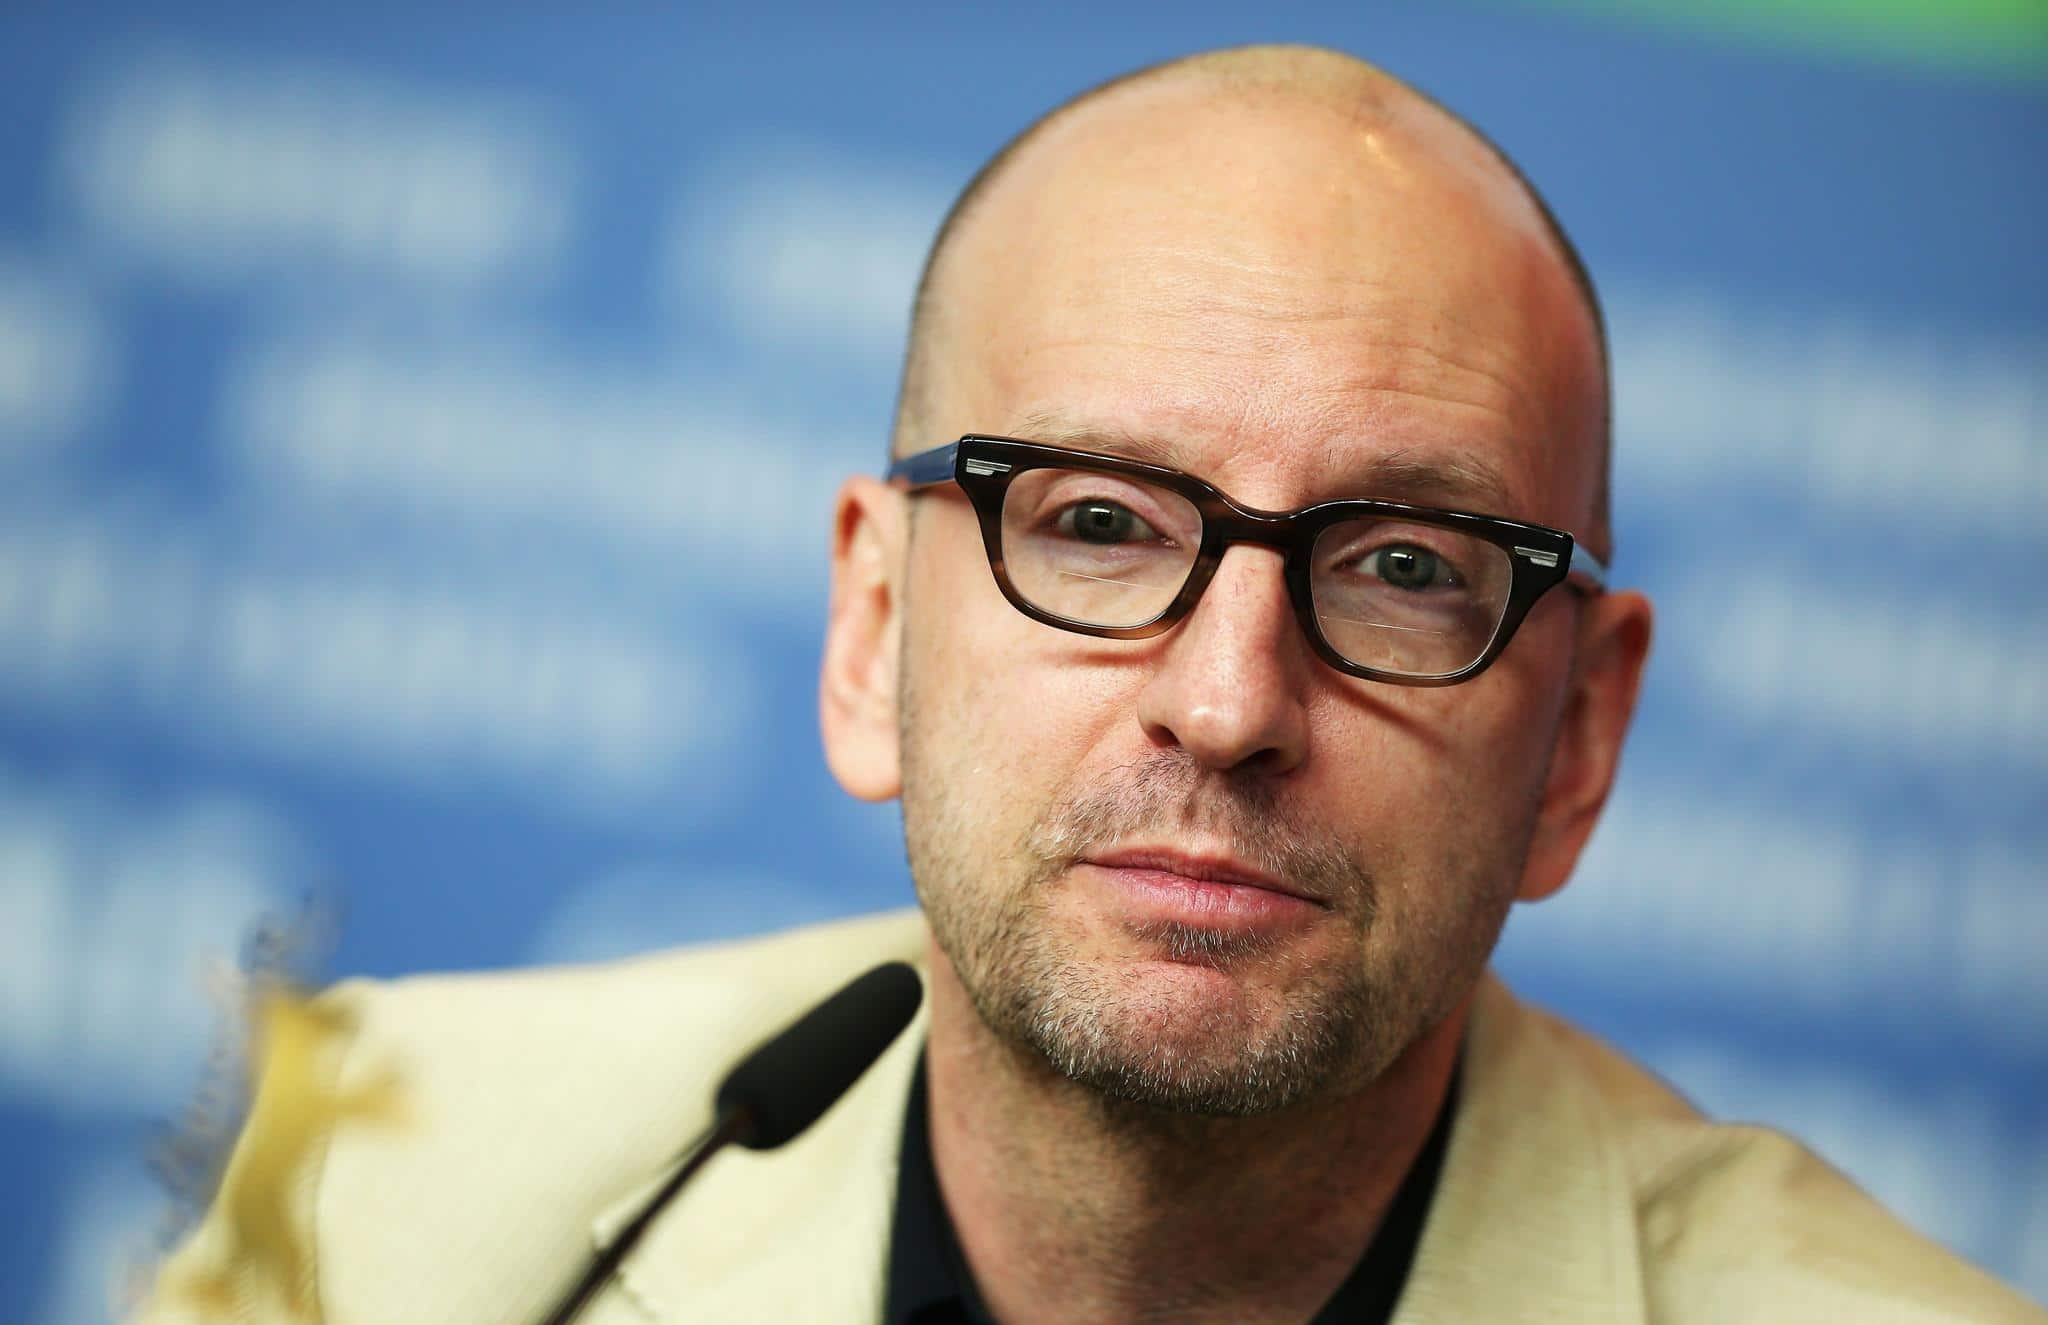 Steven-Soderbergh-Net-Worth.jpg